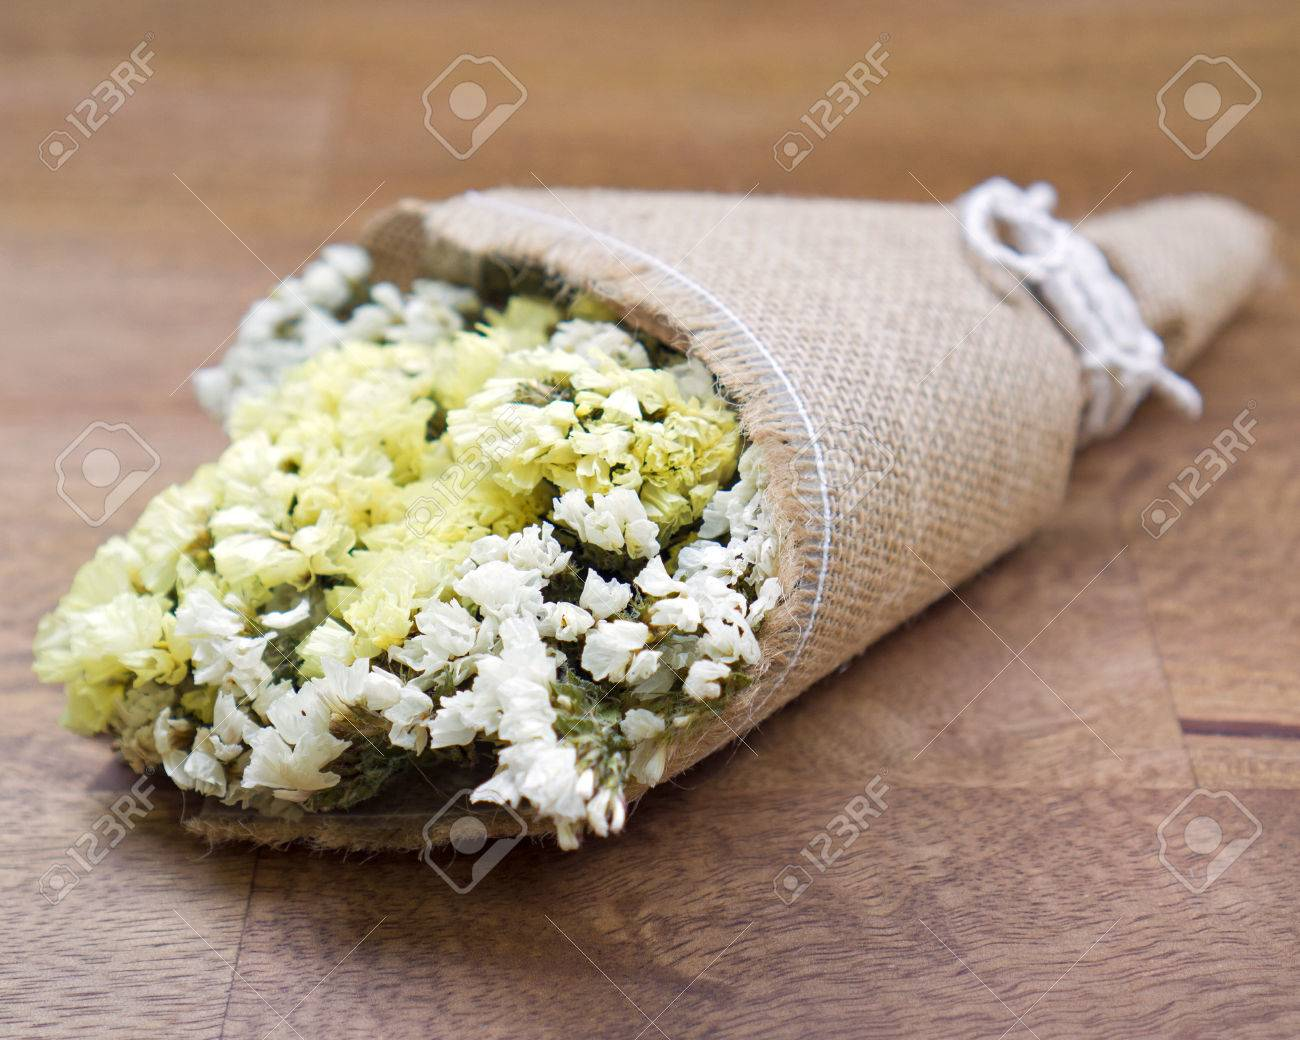 Dried Flower Bouquet On Wooden Table Stock Photo, Picture And ...